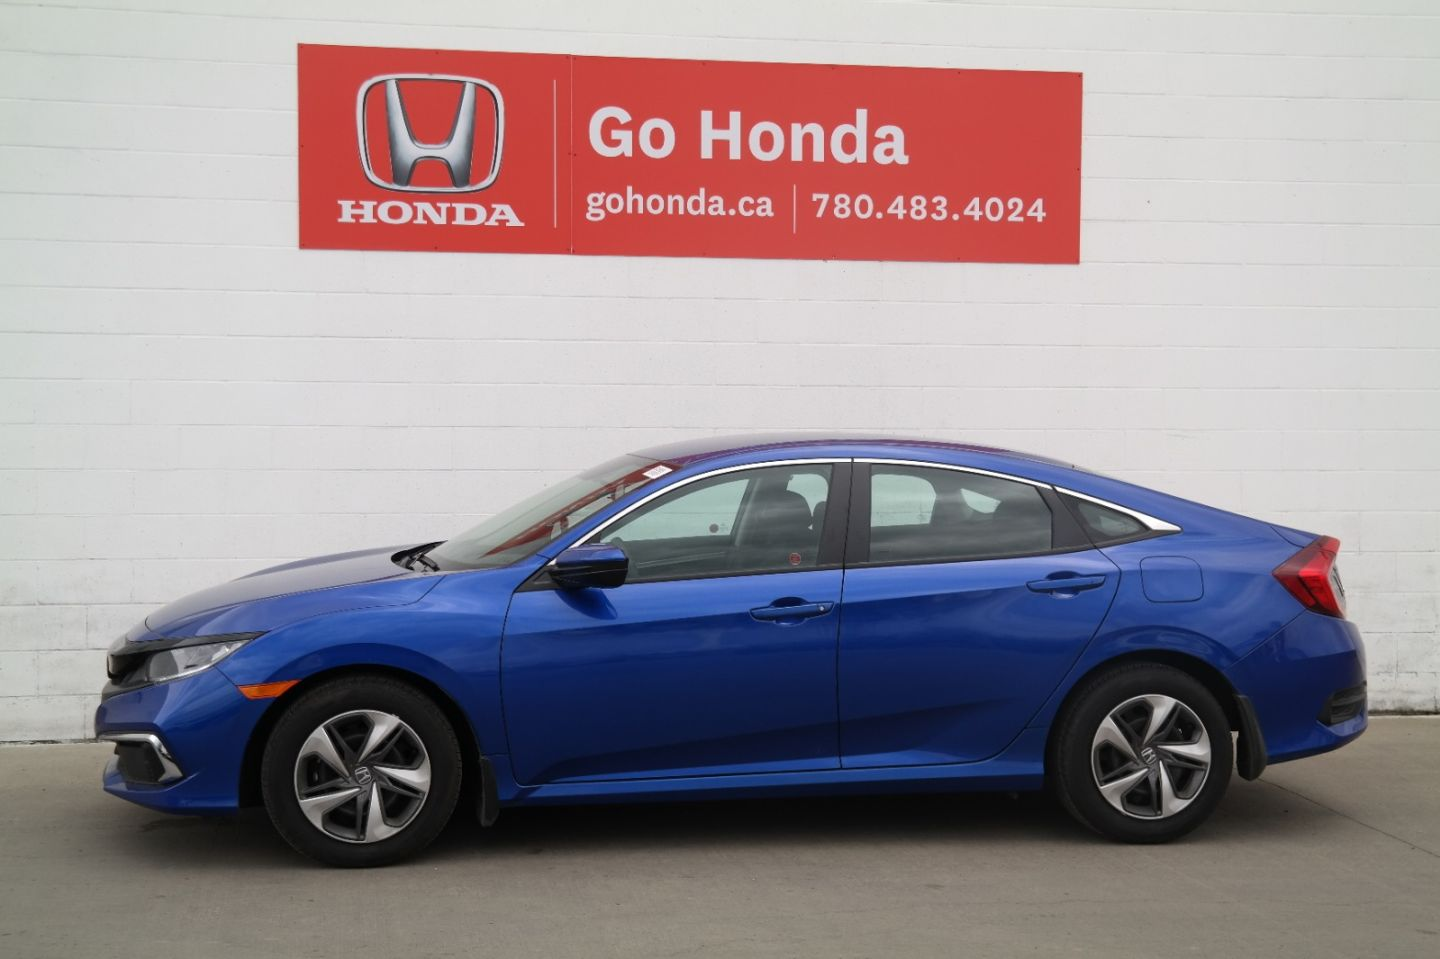 2020 Honda Civic Sedan LX for sale in Edmonton, Alberta